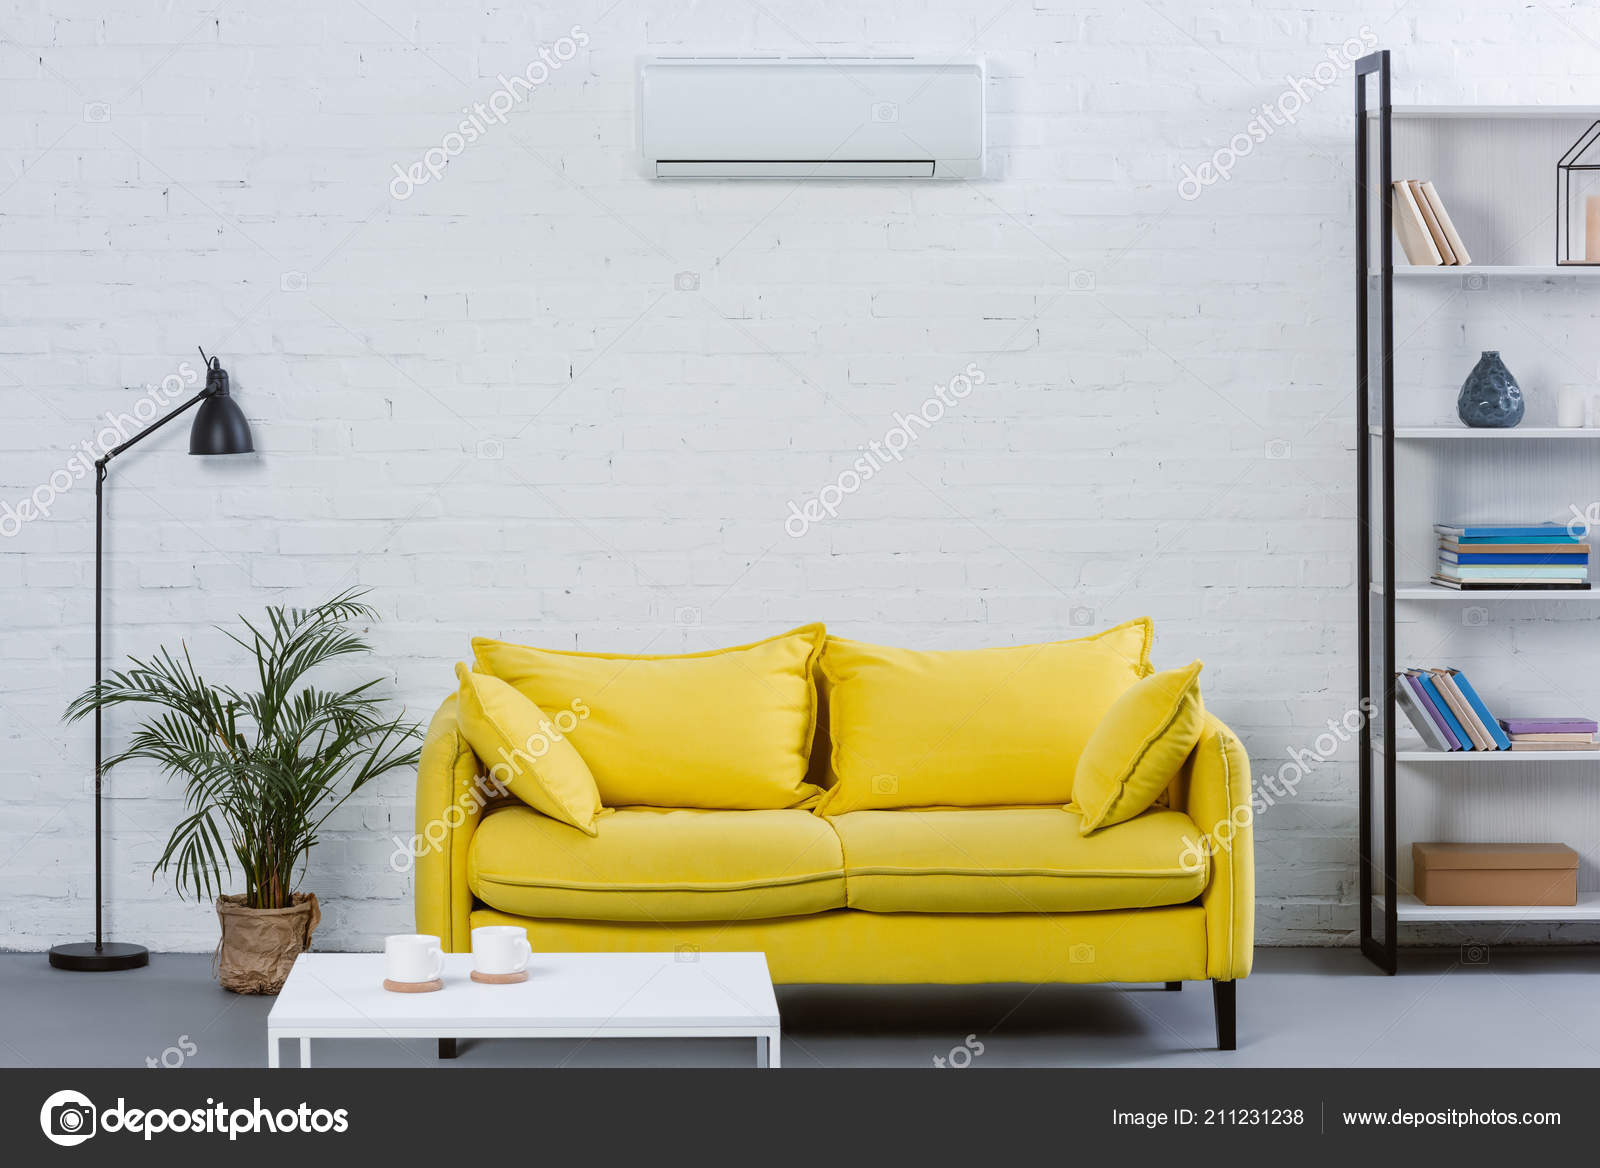 Yellow Couch Air Conditioner Hanging, Air Conditioner For Living Room